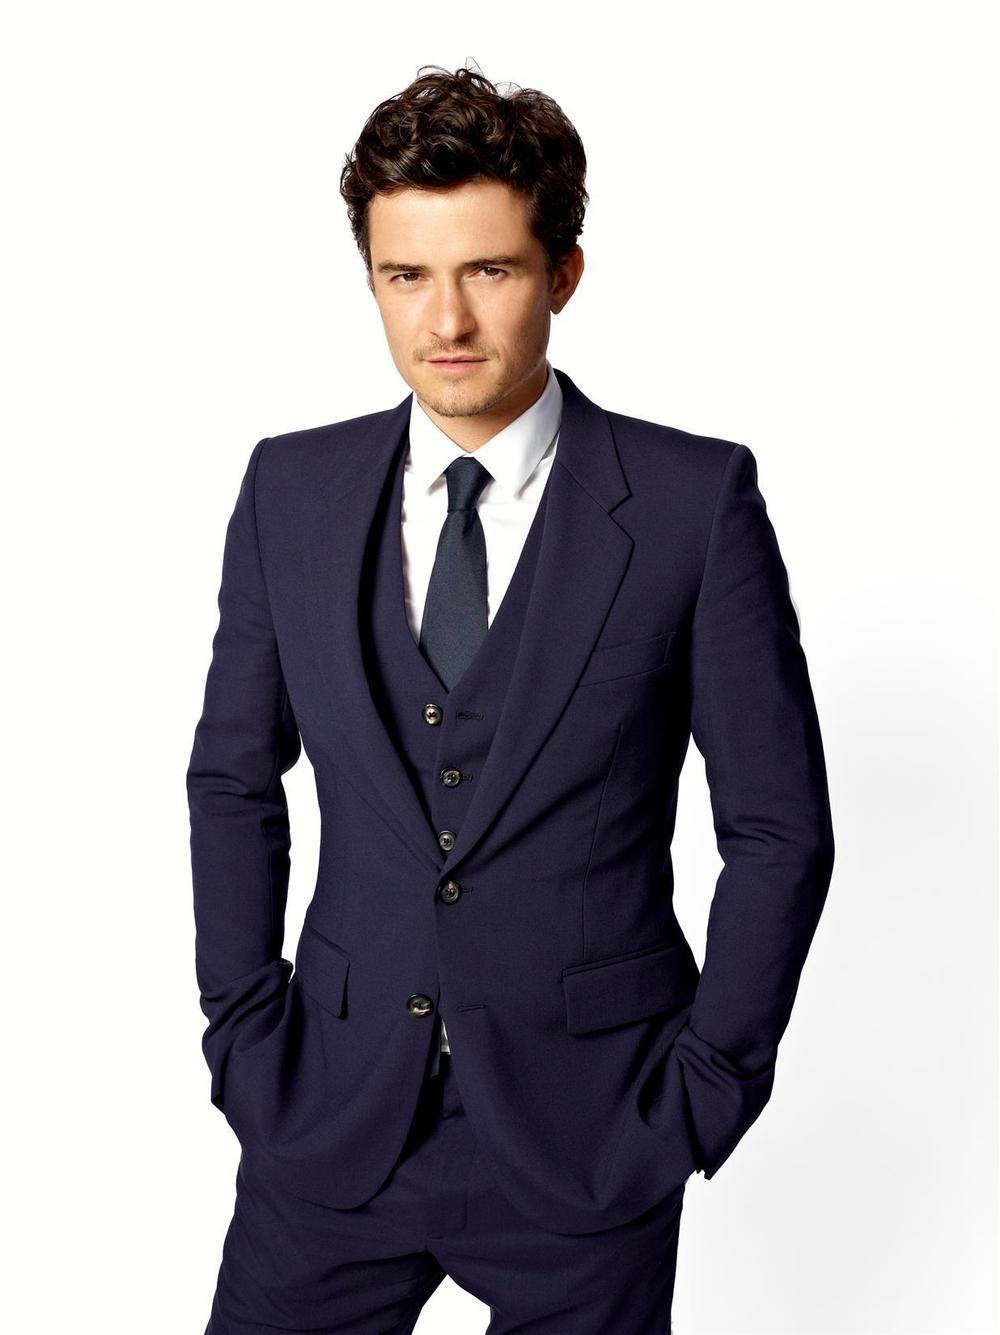 OrlandoBloom1.jpg